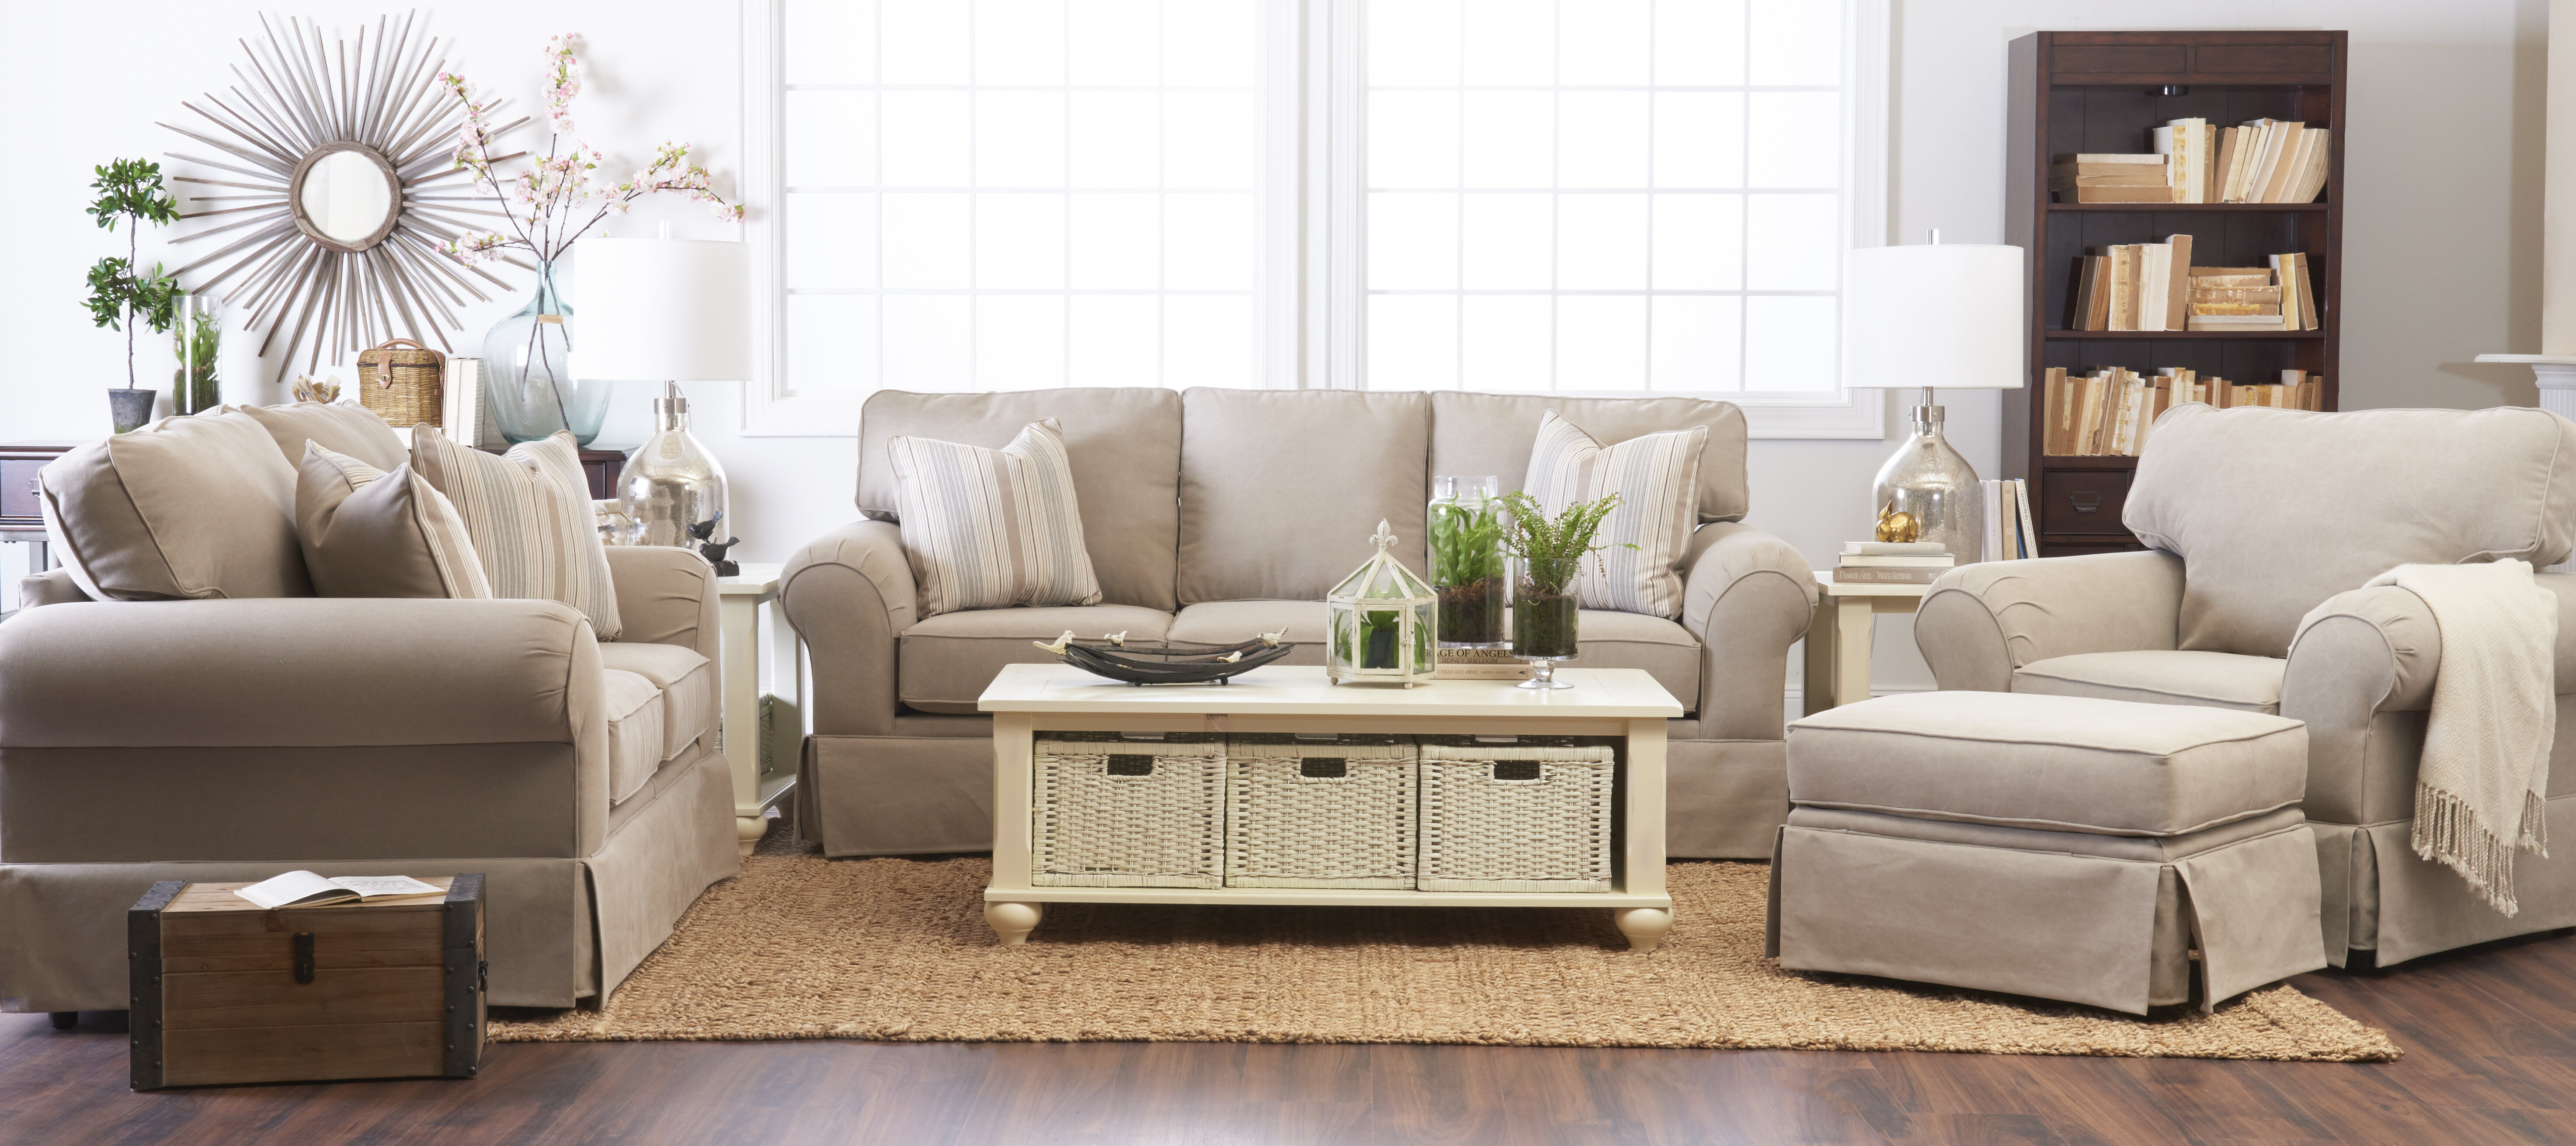 Excellent Culebra Configurable Living Room Set Gmtry Best Dining Table And Chair Ideas Images Gmtryco